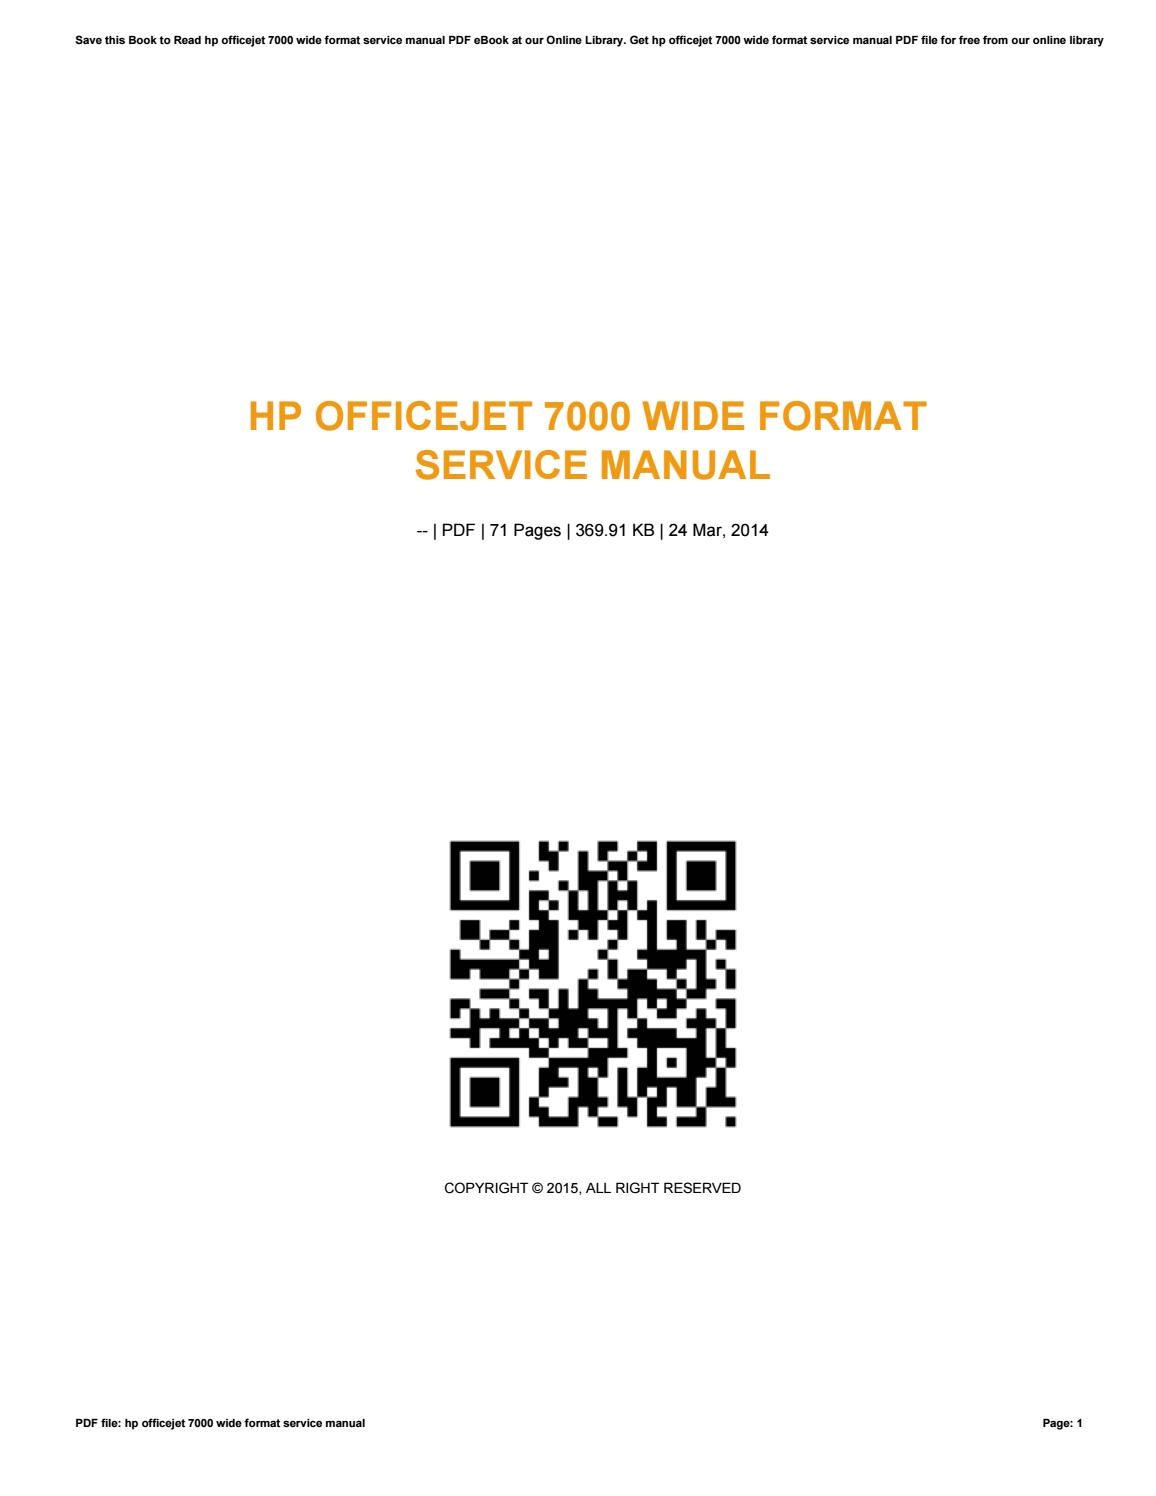 Hp manual pdf array hp officejet 7000 wide format service manual by v460 issuu rh issuu fandeluxe Image collections